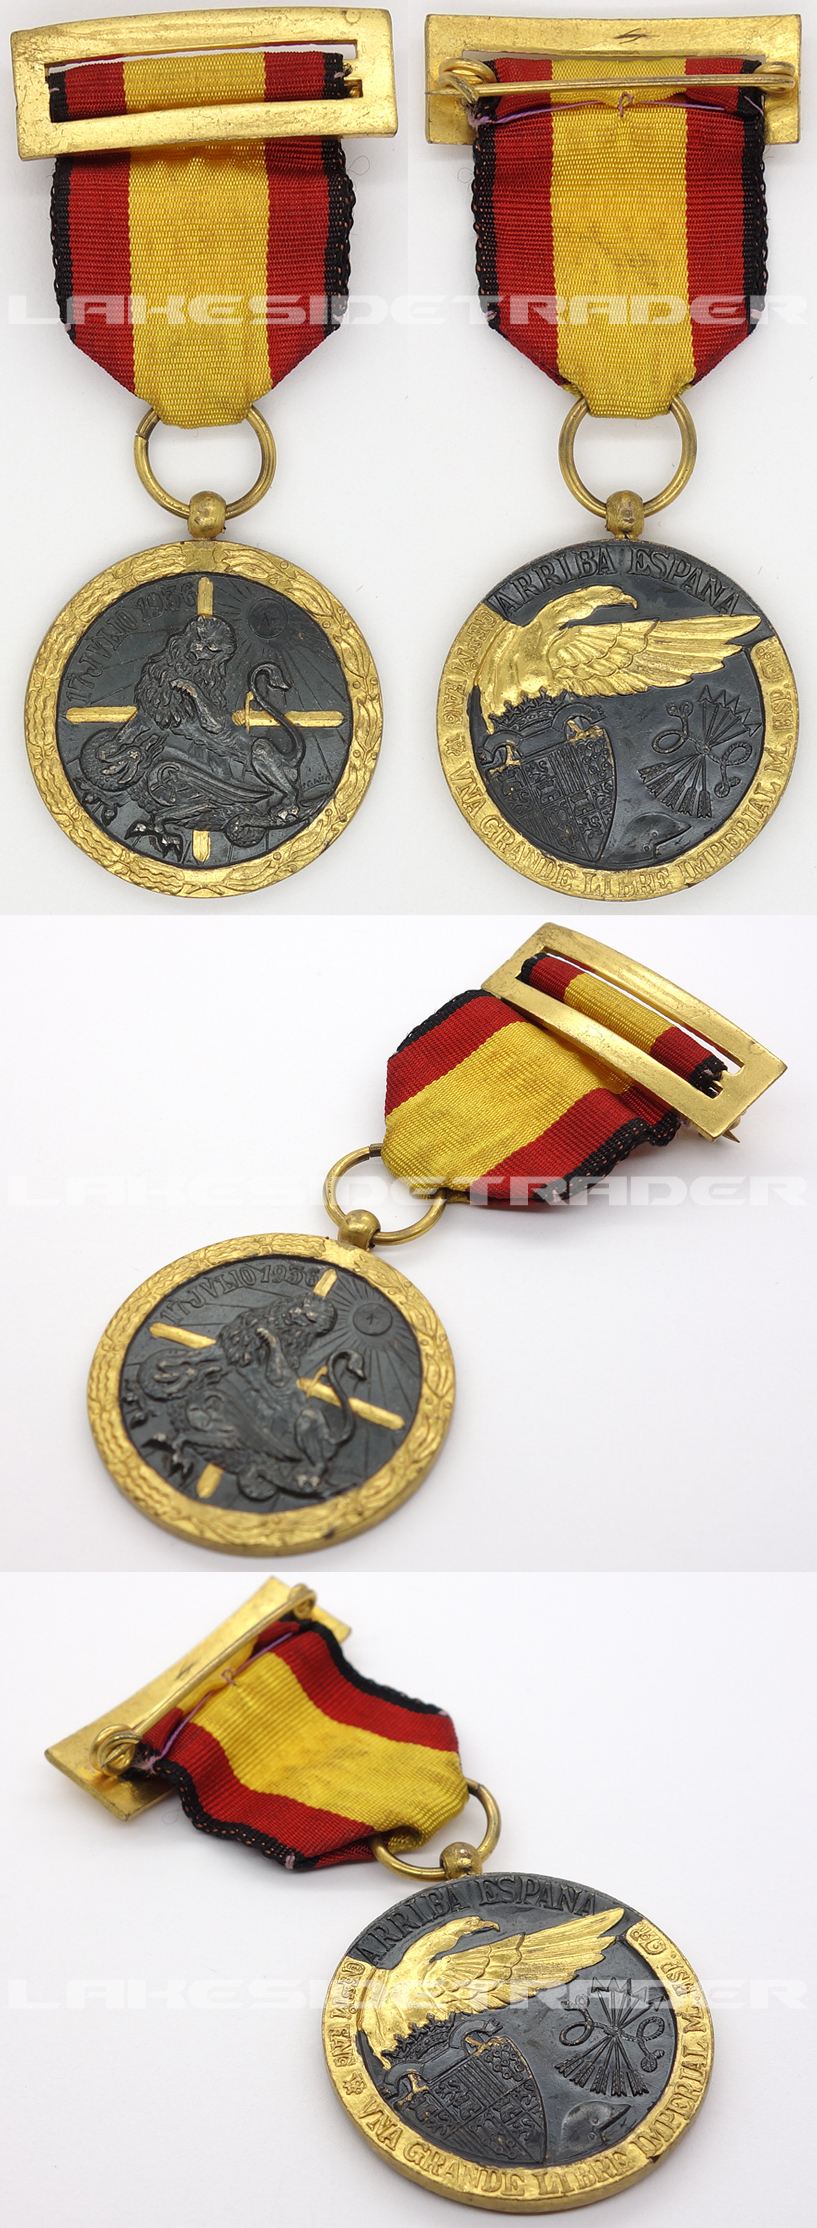 Spanish Civil War Campaign Medal 1936-1939